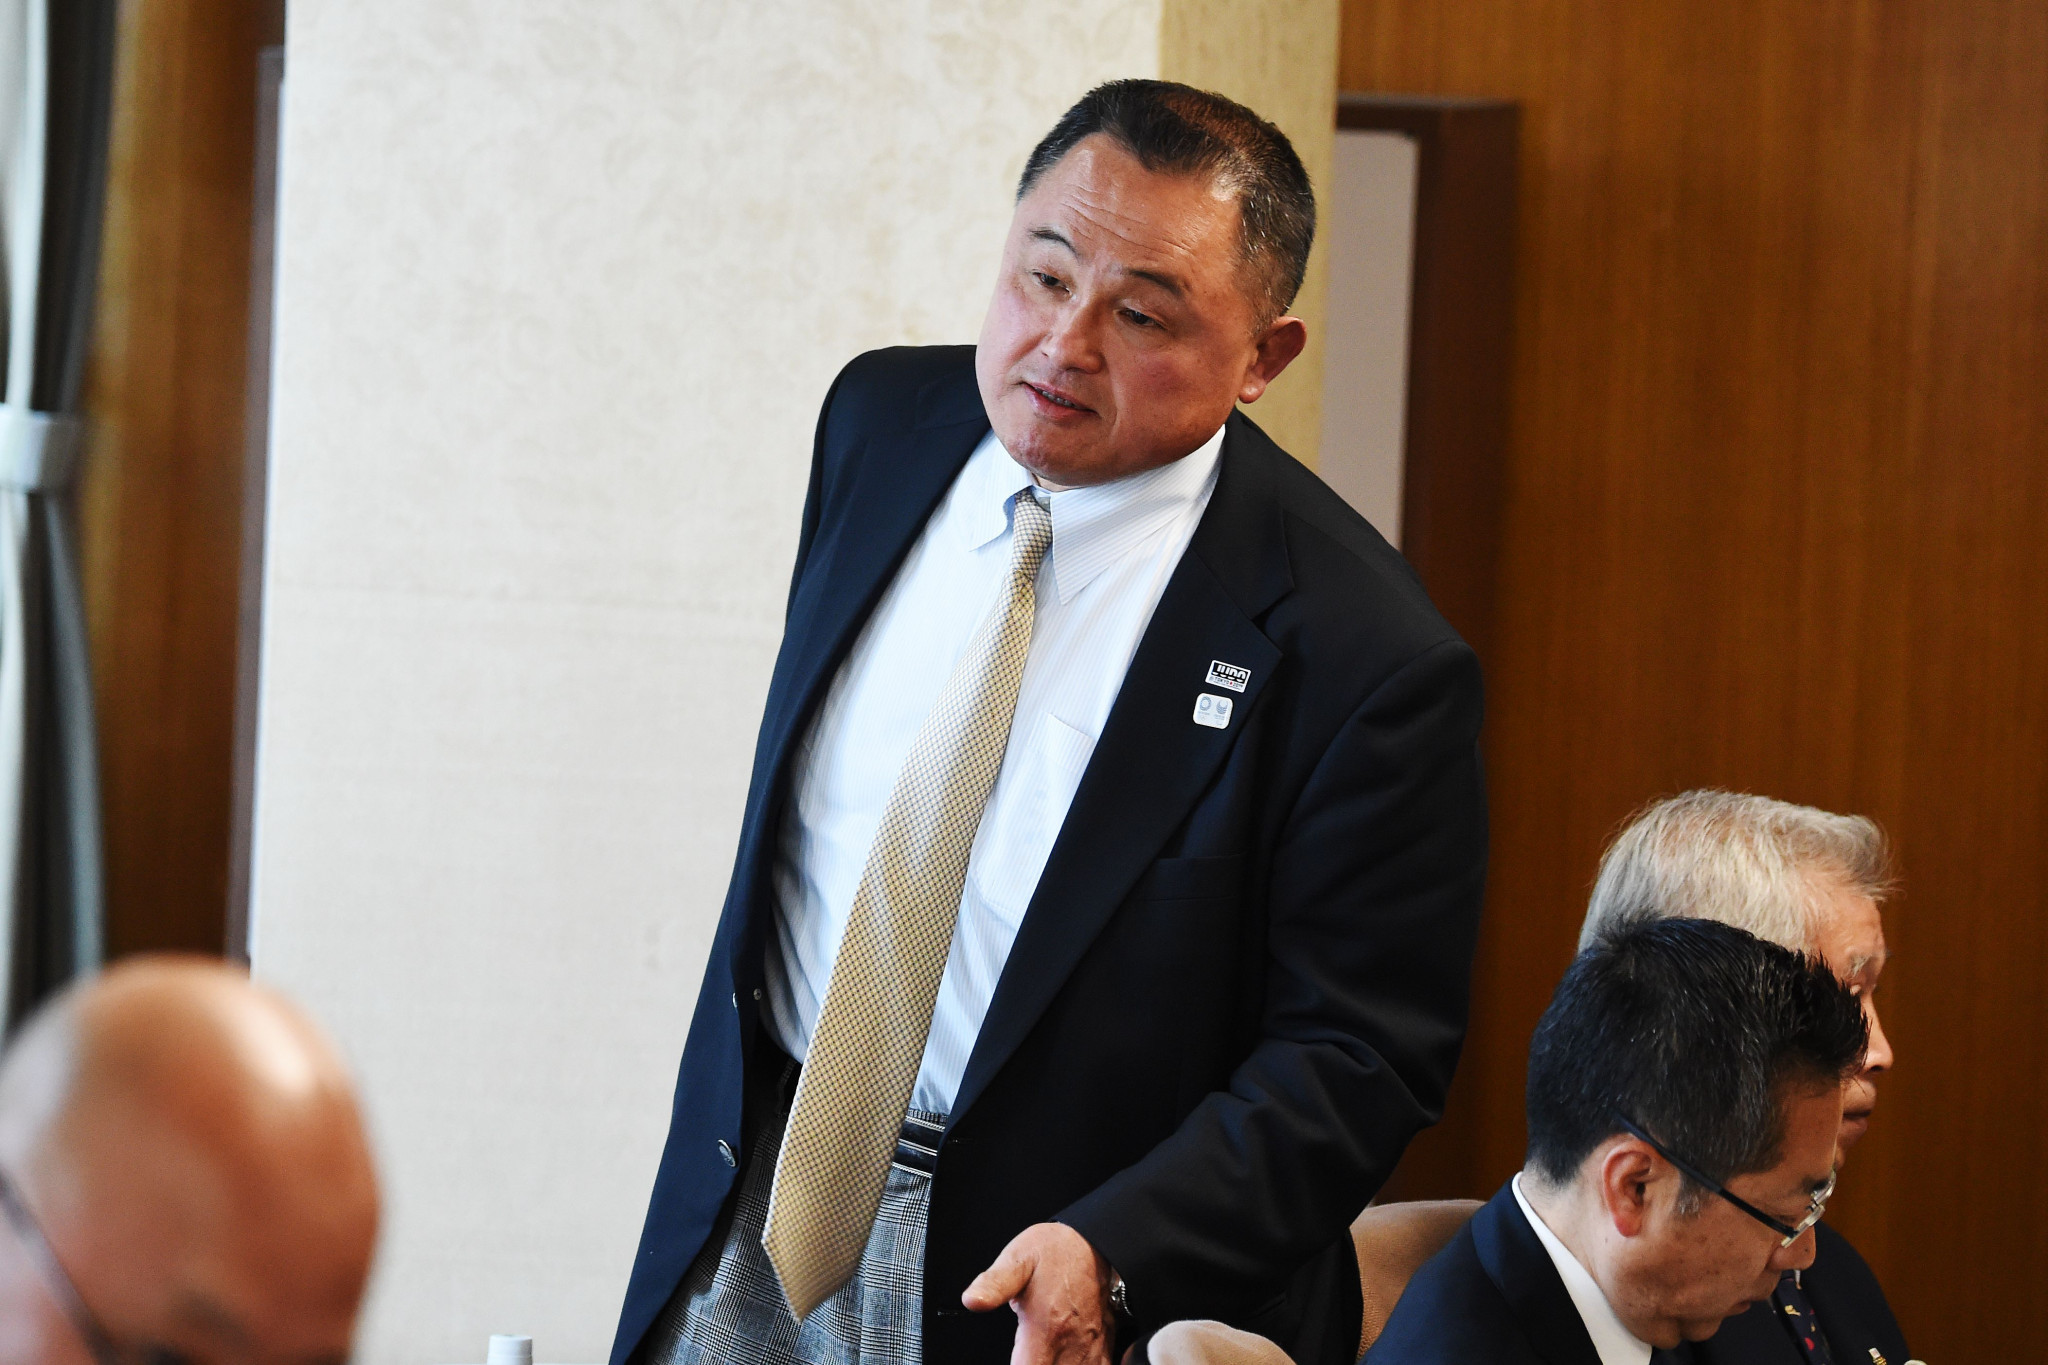 Yamashita set to be named new Japanese Olympic Committee President to replace Takeda